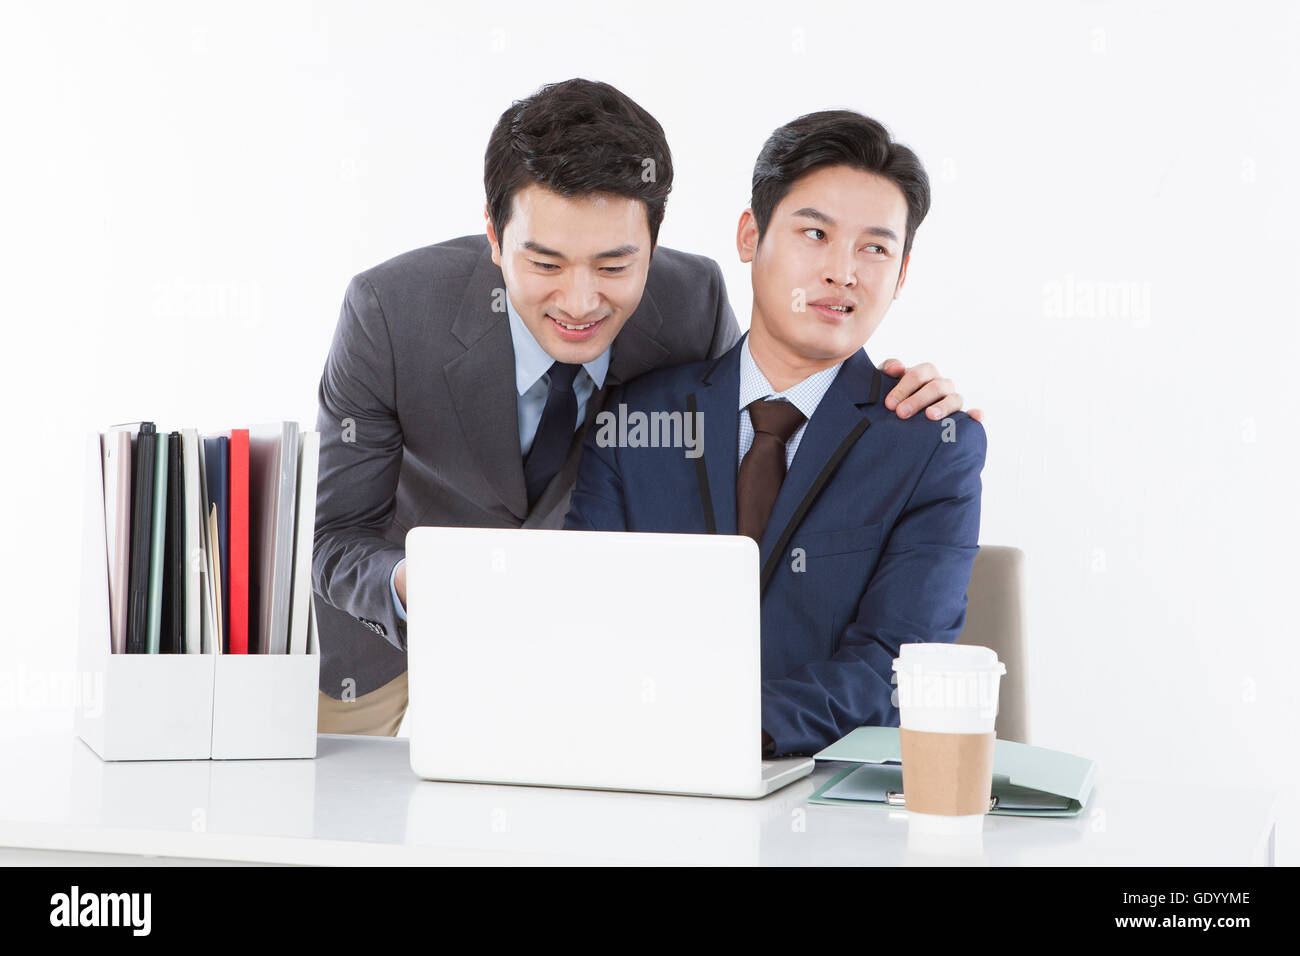 Contrast of two businessmen, one smiling and the other stressful at work - Stock Image